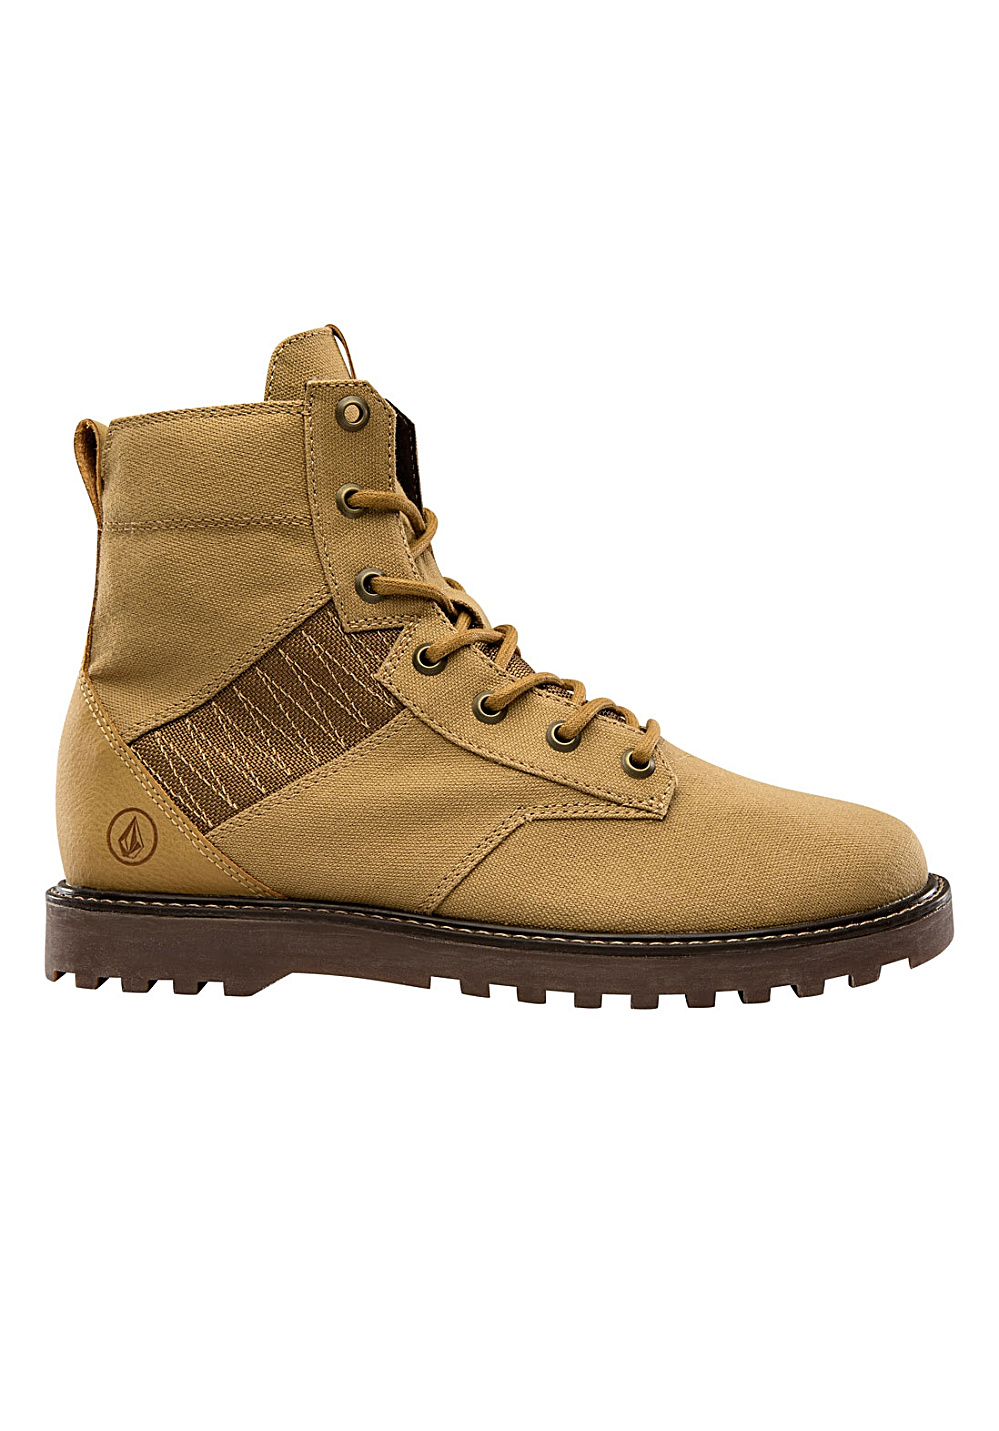 3720023c532c Volcom Hemlock - Boots for Women - Beige - Planet Sports